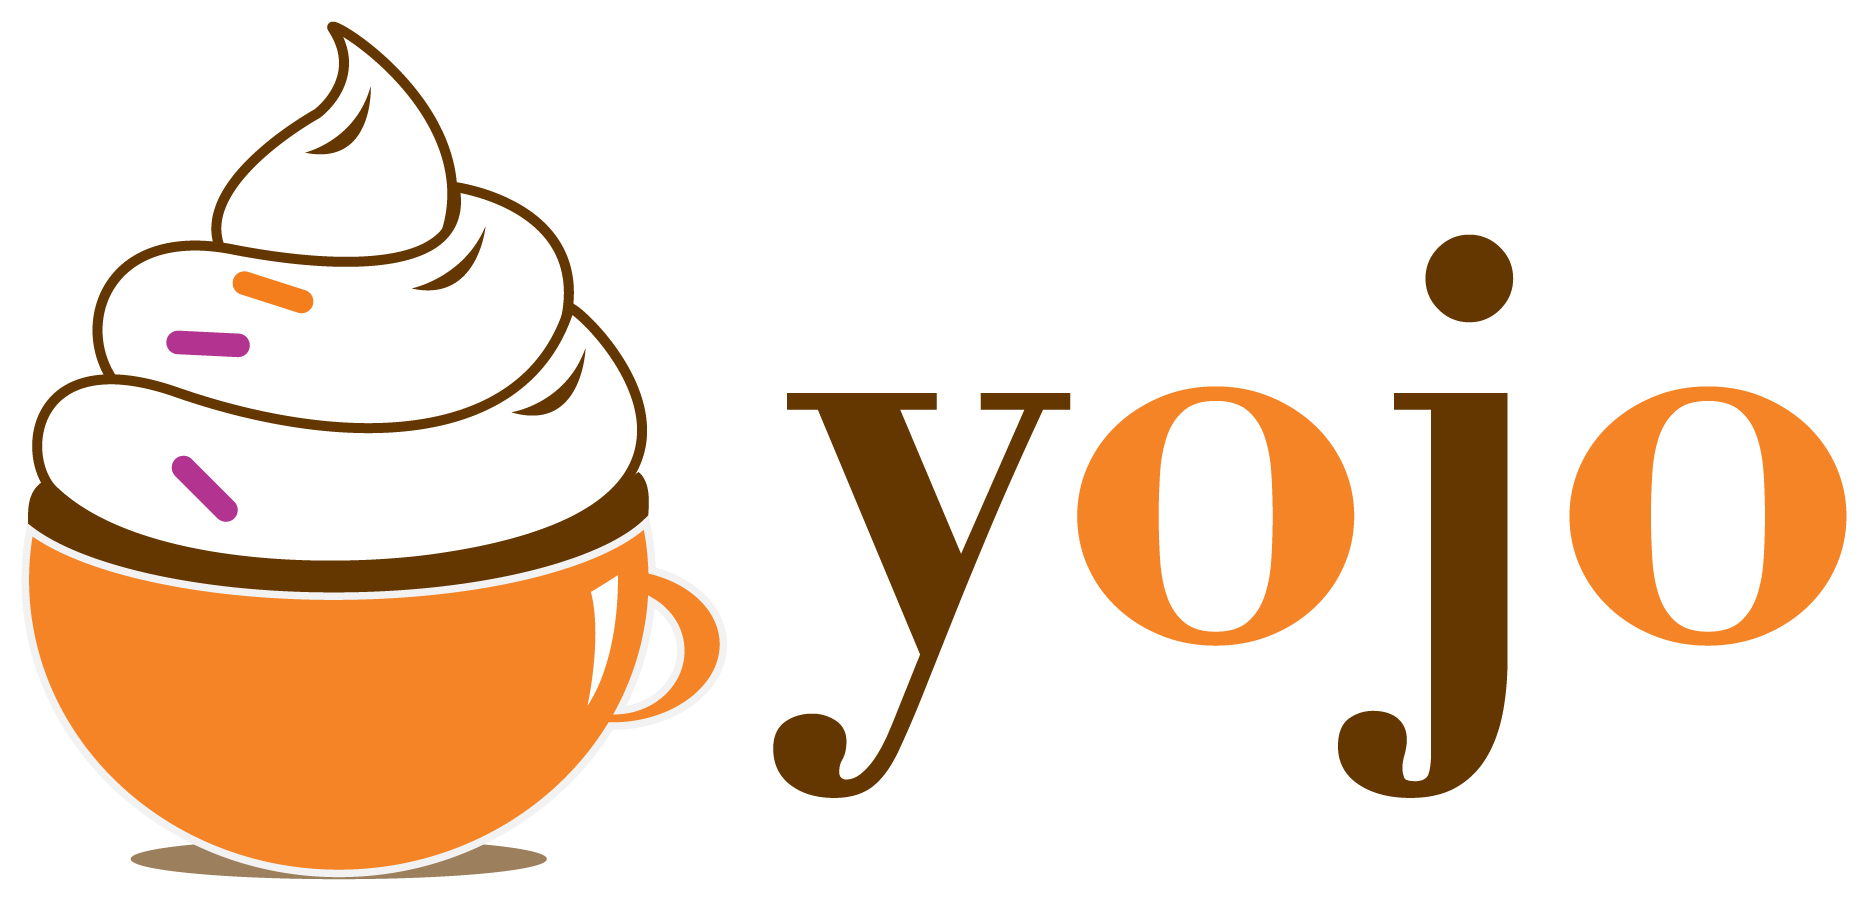 Yogurt clipart yogurt drink. Yojo coffee frozen